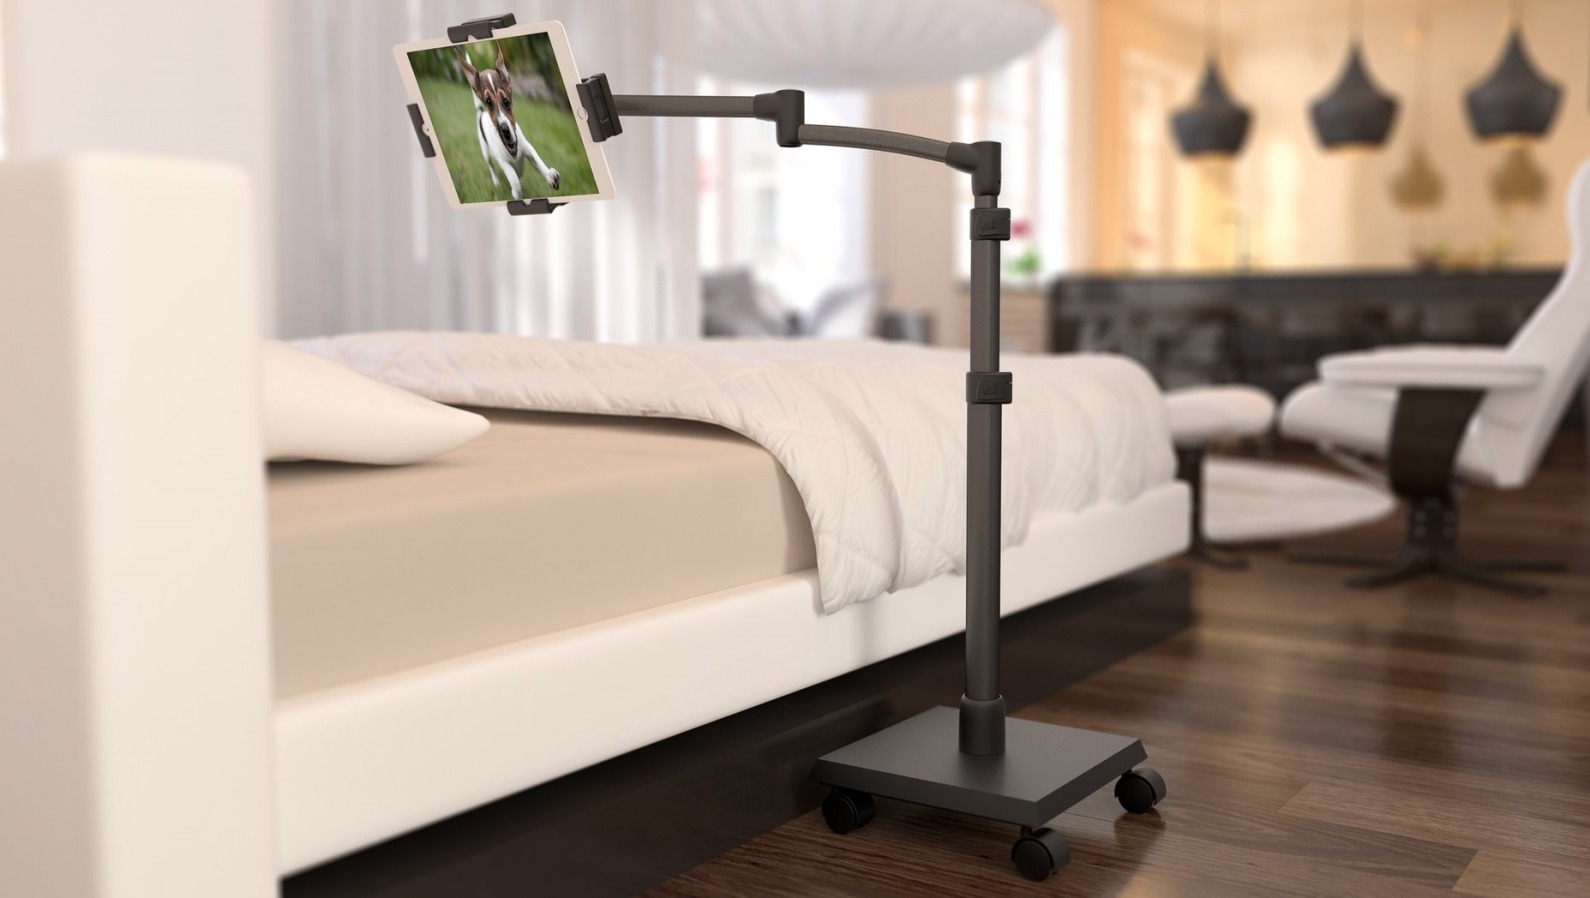 LEVO G2 Deluxe Tablet Stand next to bed